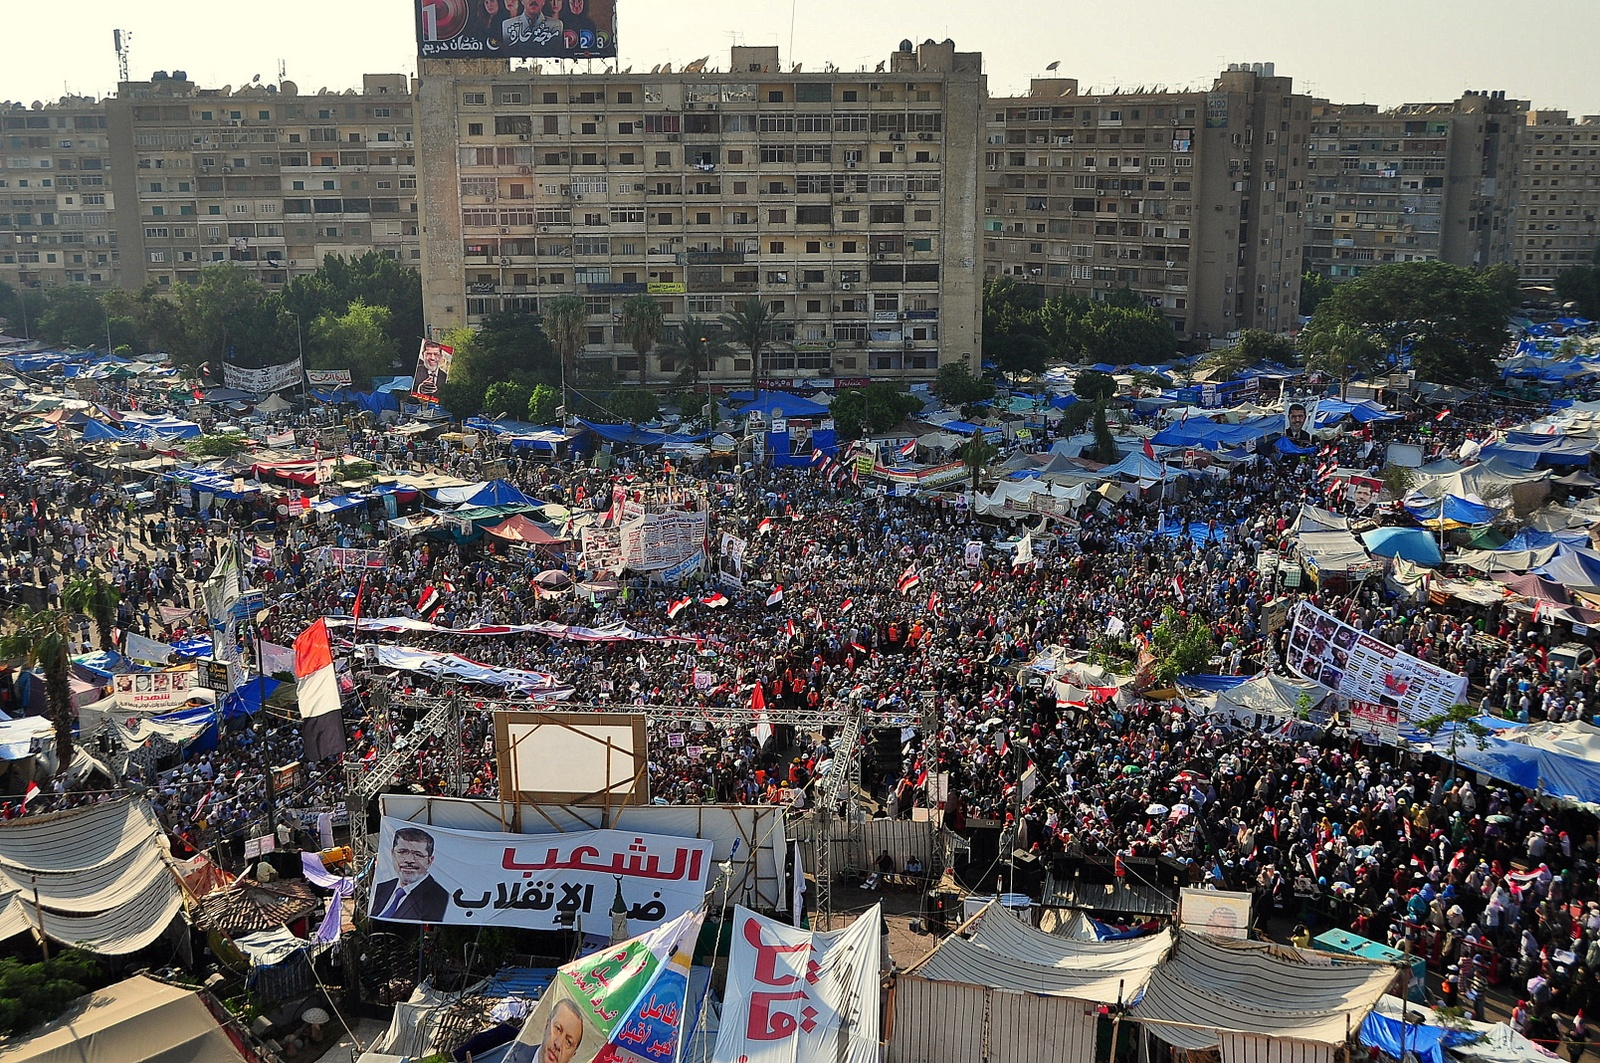 Pro-Morsi marches converge on Rabaa Al Adaweya sit in on Friday (Photo by Aaron T. Rose/DNE)